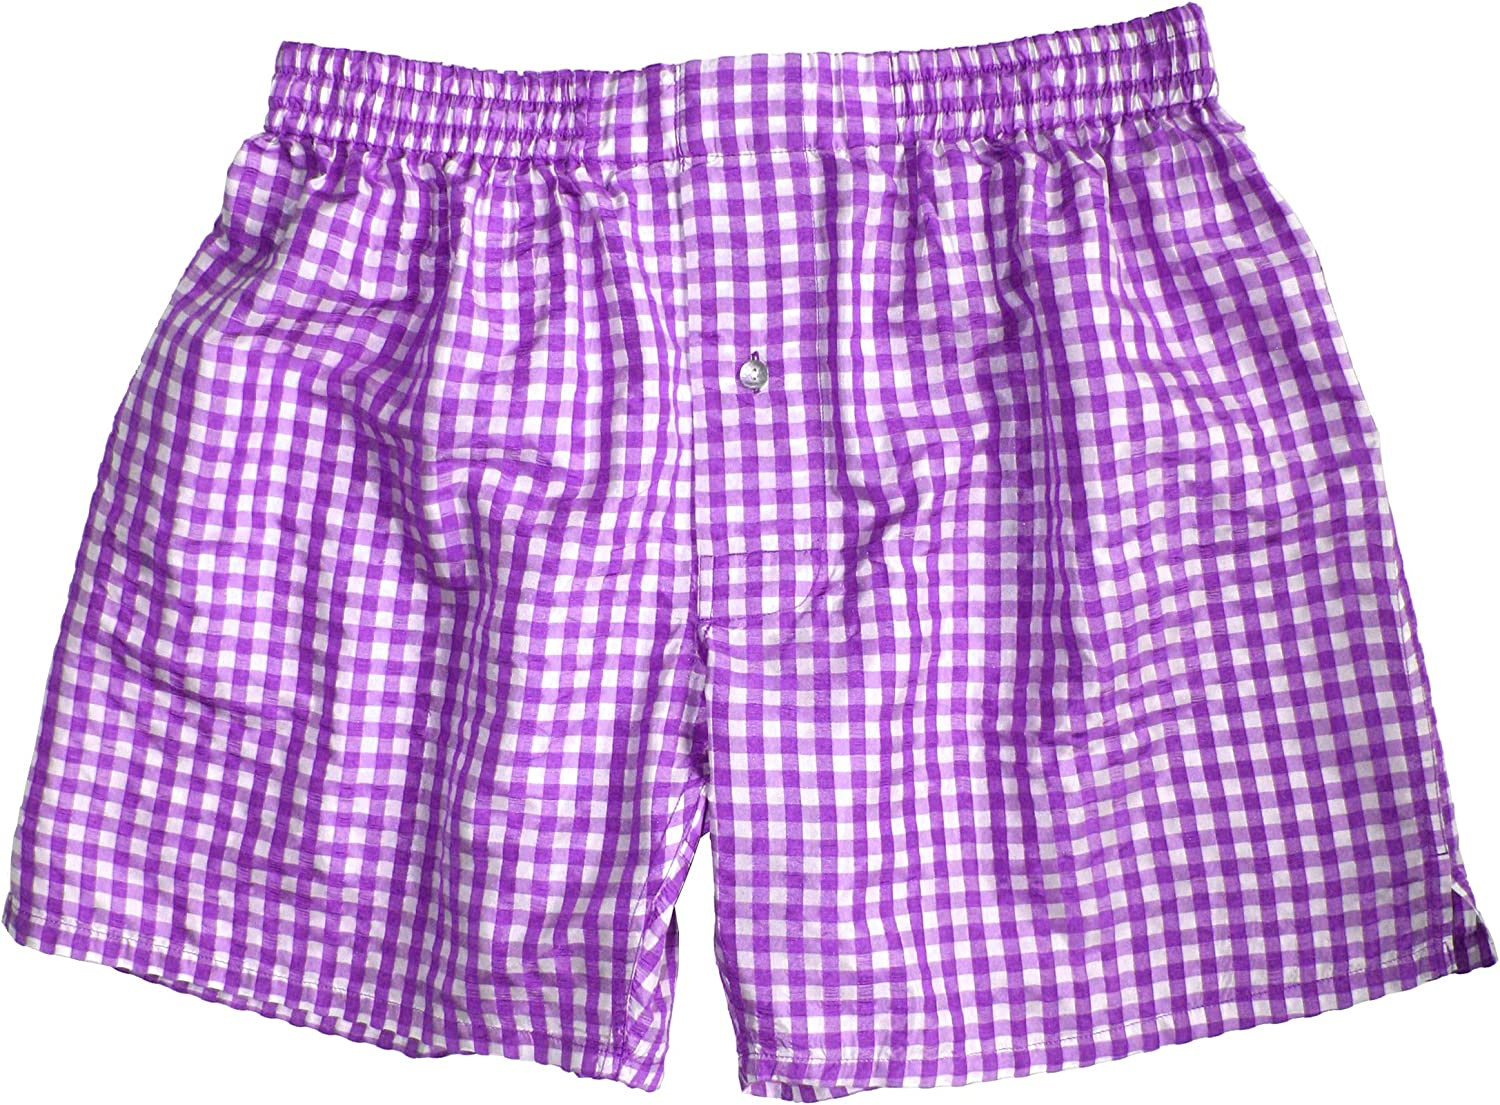 Fabulous Men's Madras Ranking TOP18 Silk Boxers Recommended by – Royal Superb Stripes